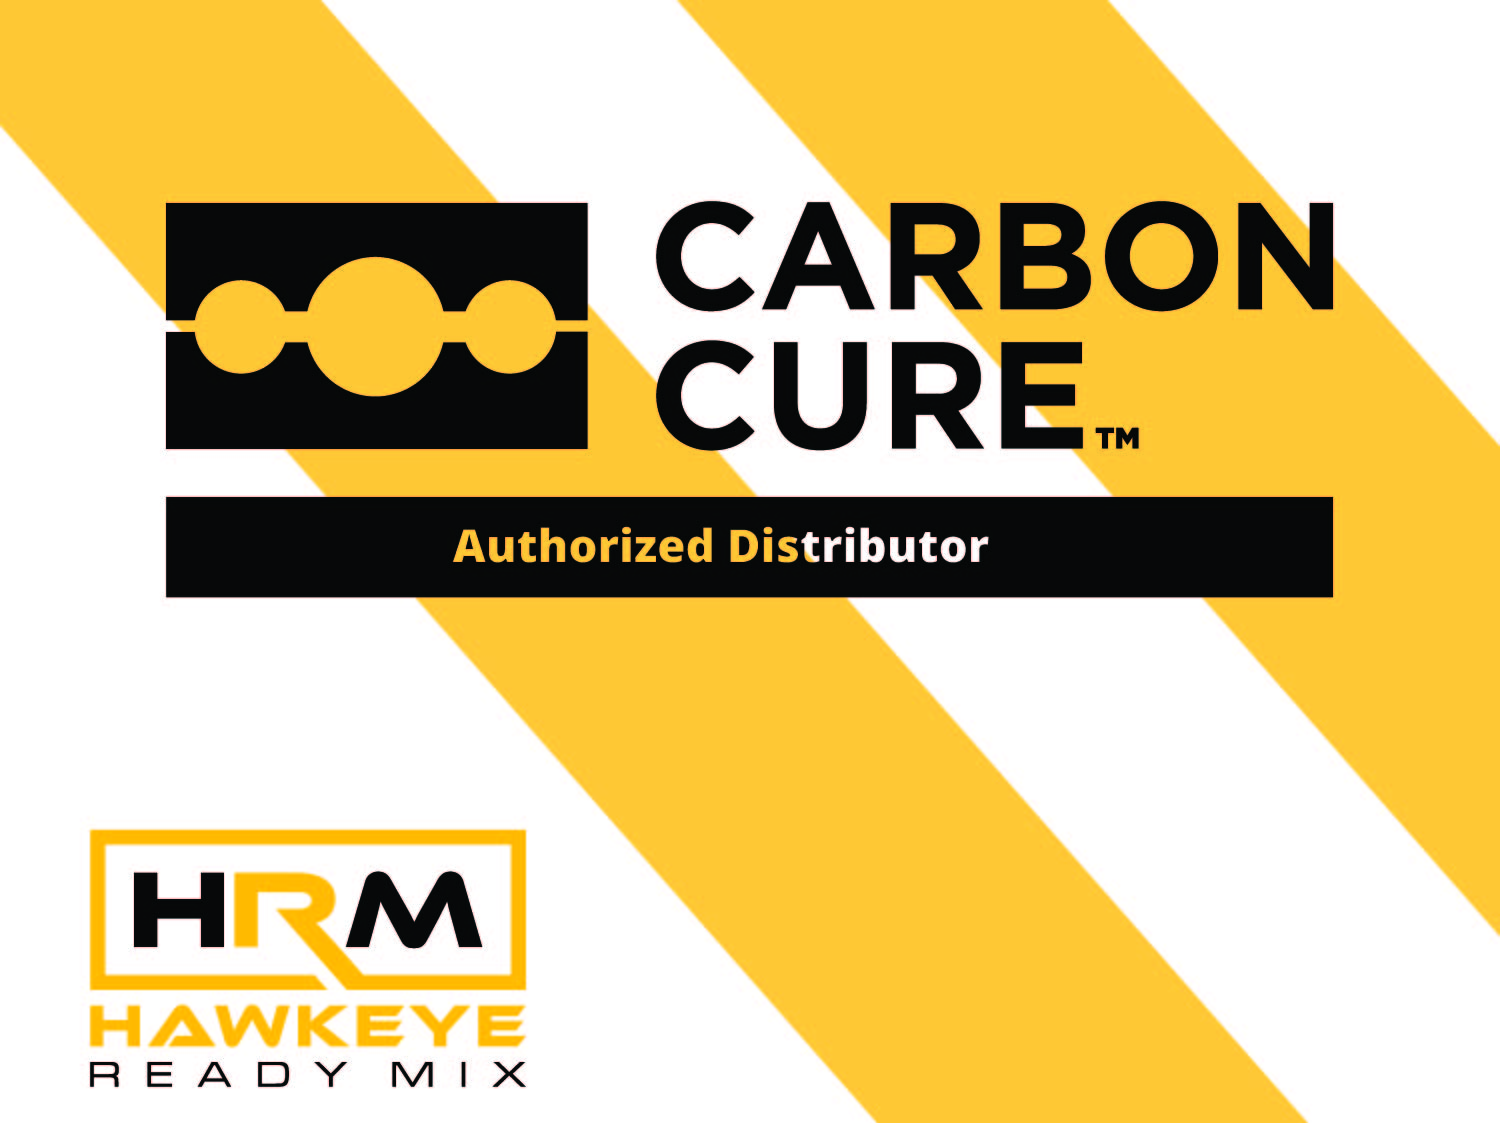 Hawkeye Ready Mix and CarbonCure Team Up to Reduce Carbon Footprint